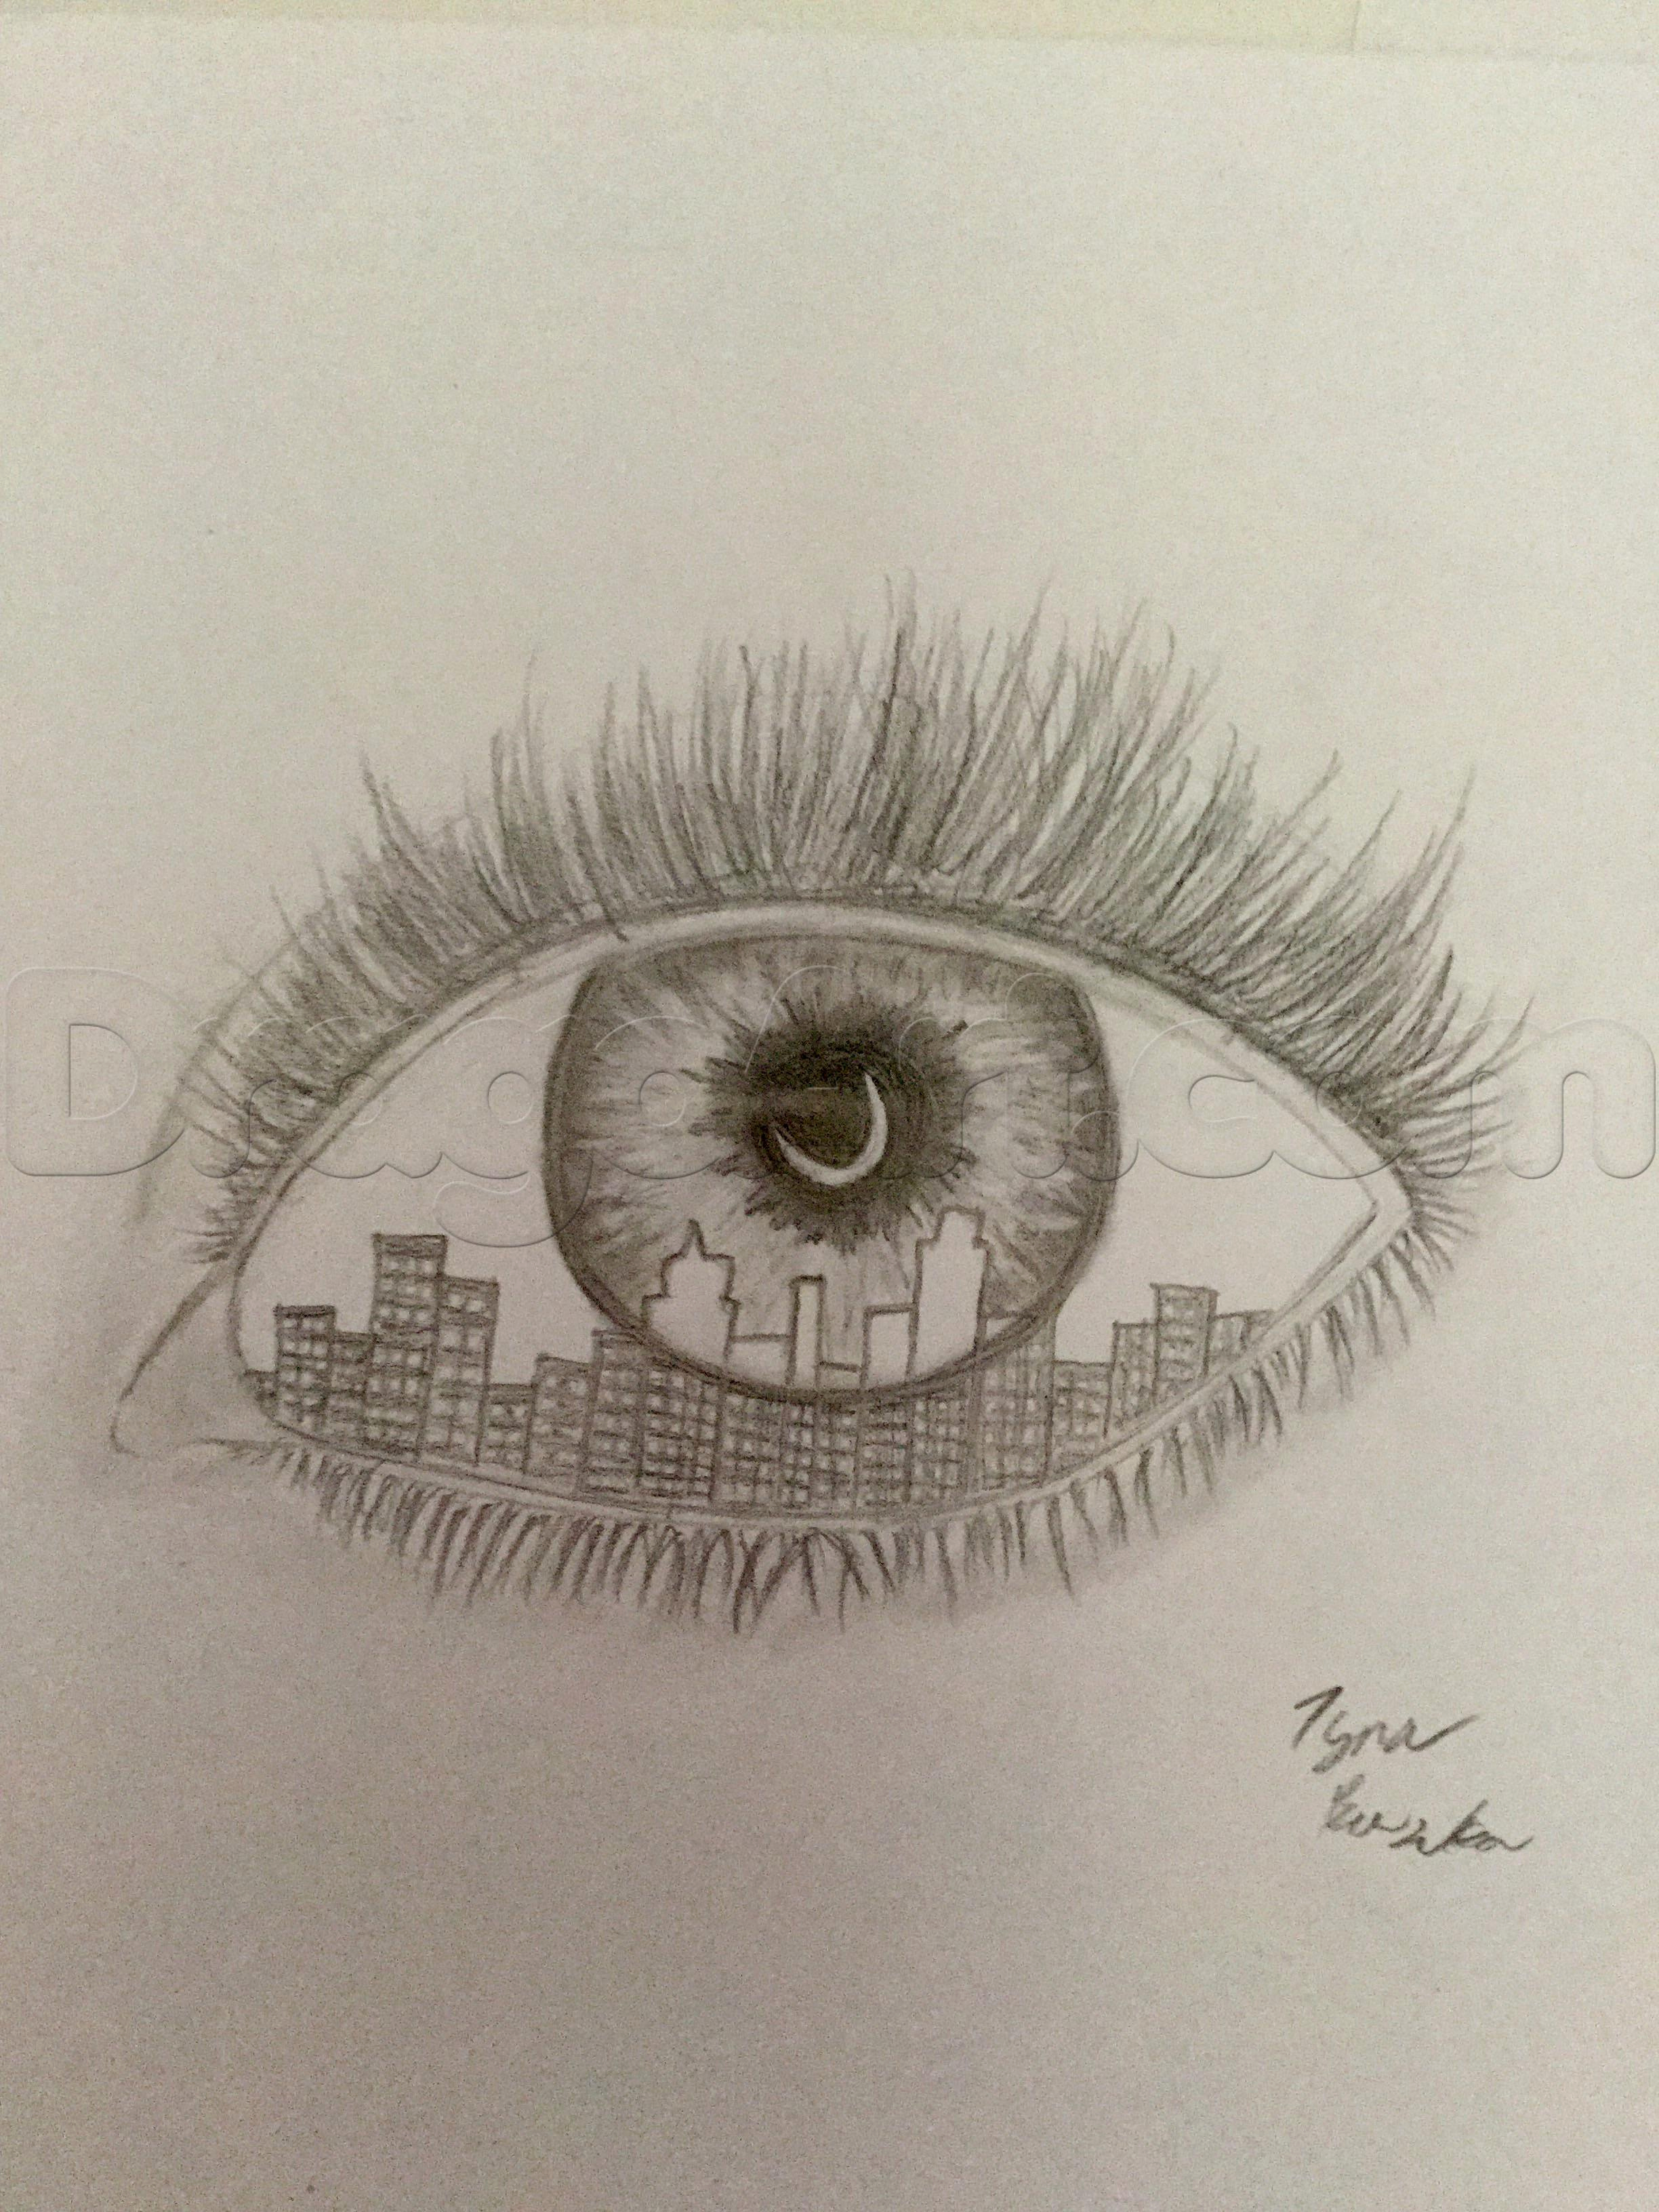 Cool Drawings to Draw Beautiful How to Draw A Cool Eye Step by Step Concept Art Fantasy